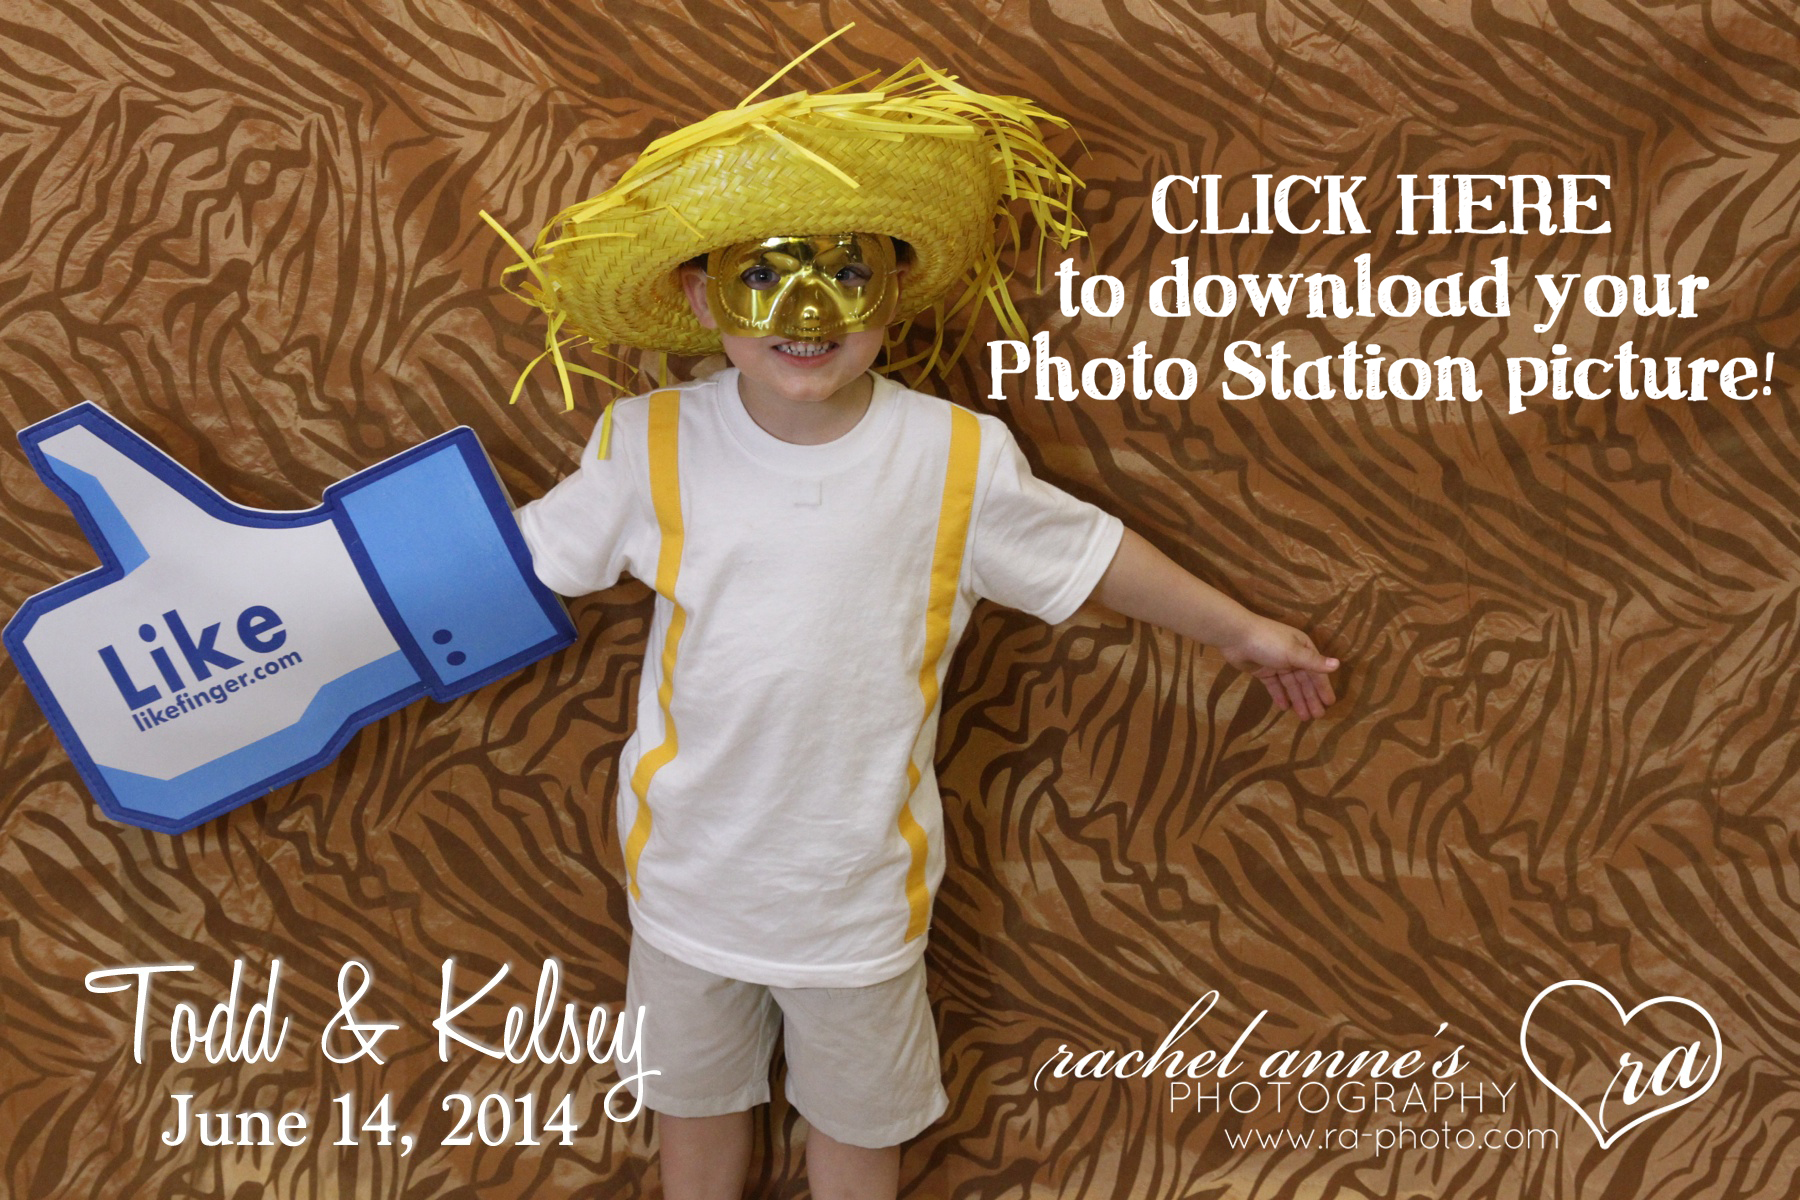 TKS Photo Station download.jpg